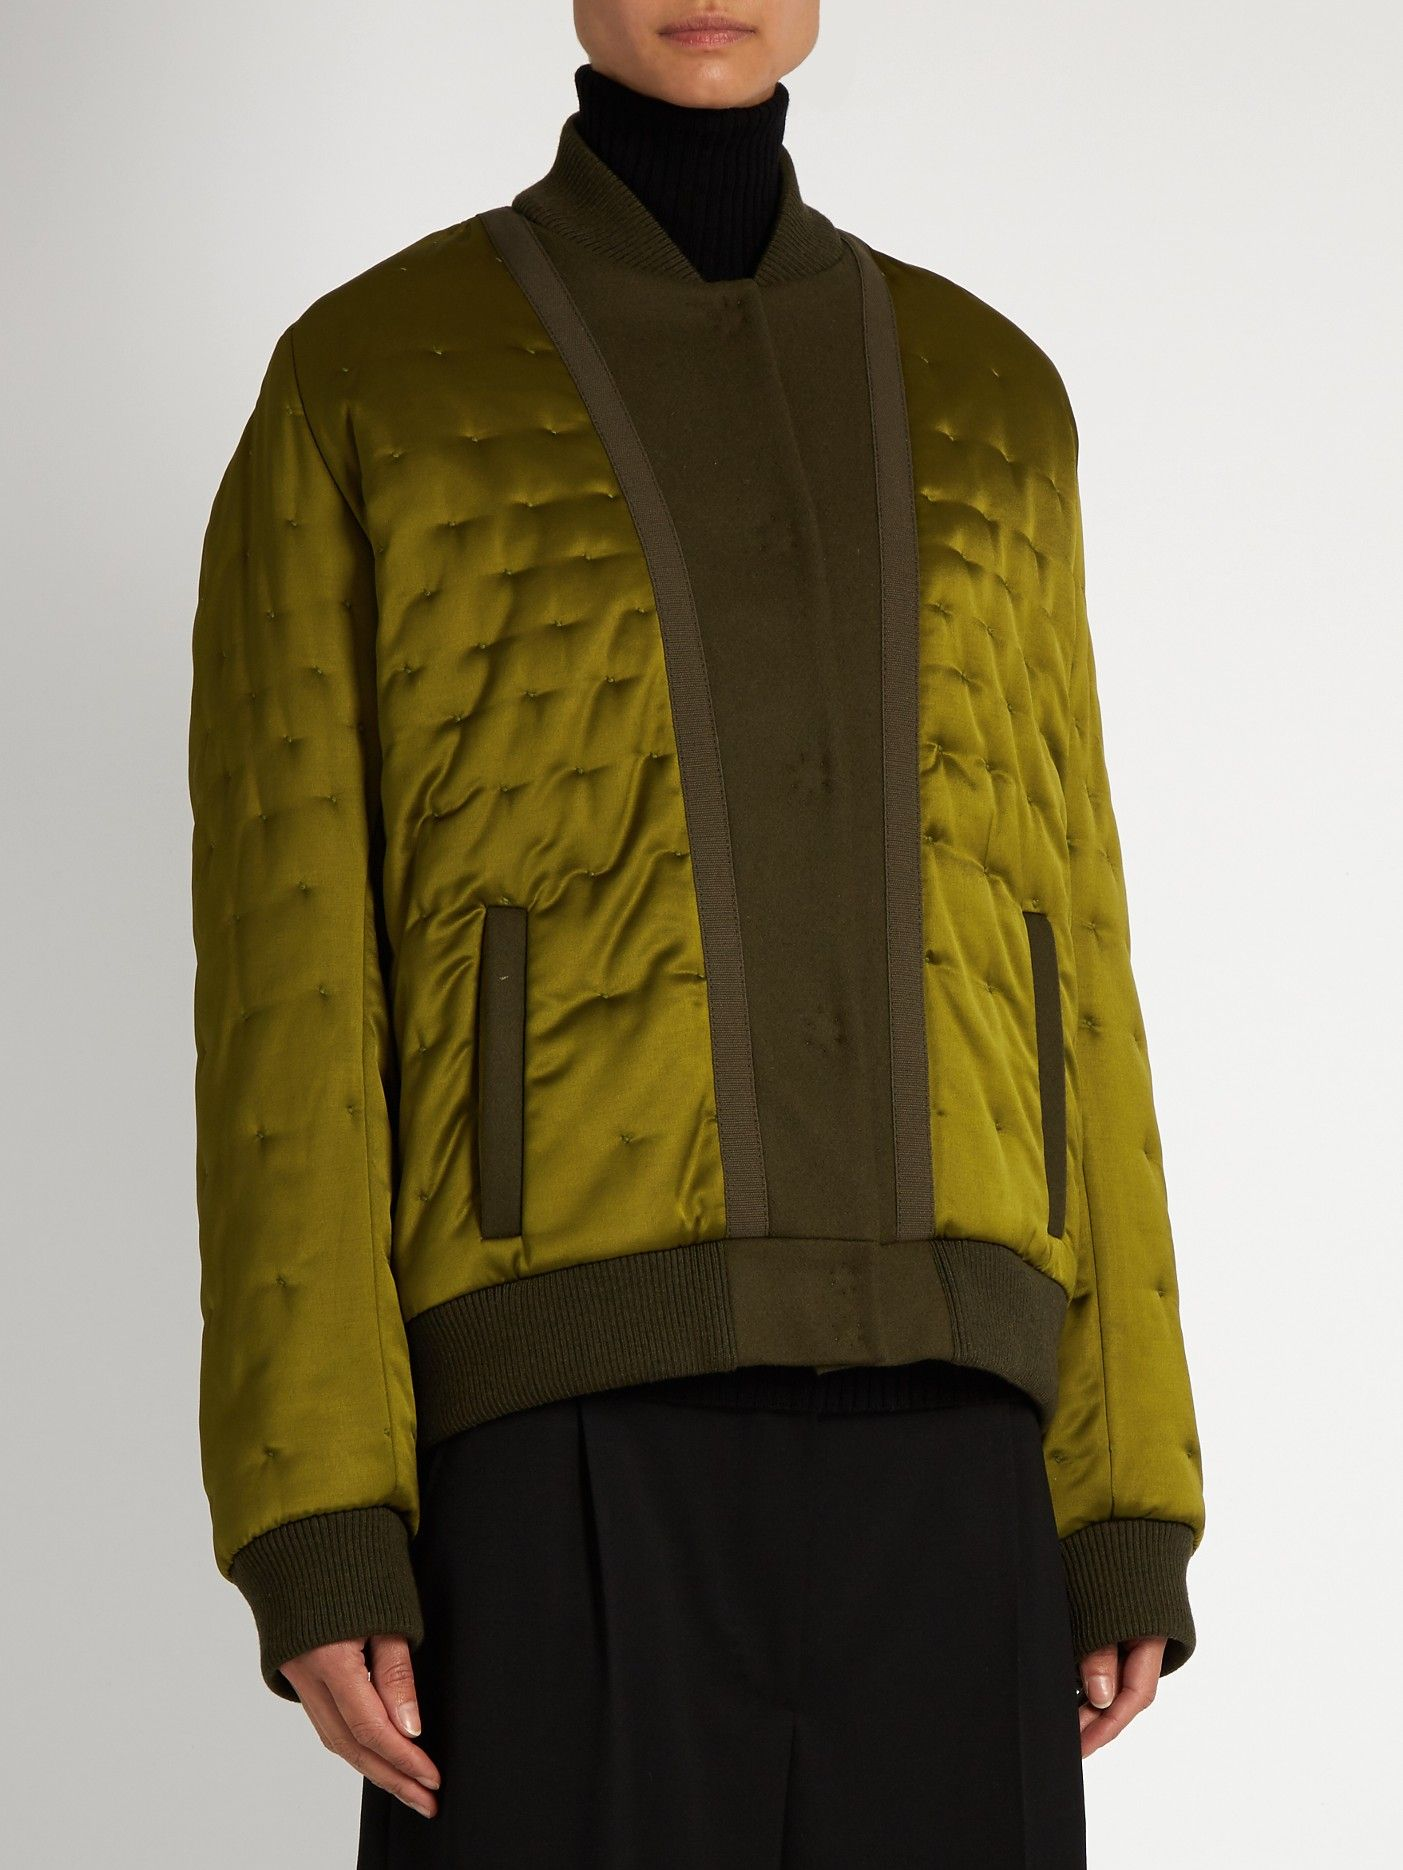 Quilted satin bomber jacket | Maison Margiela | MATCHESFASHION.COM